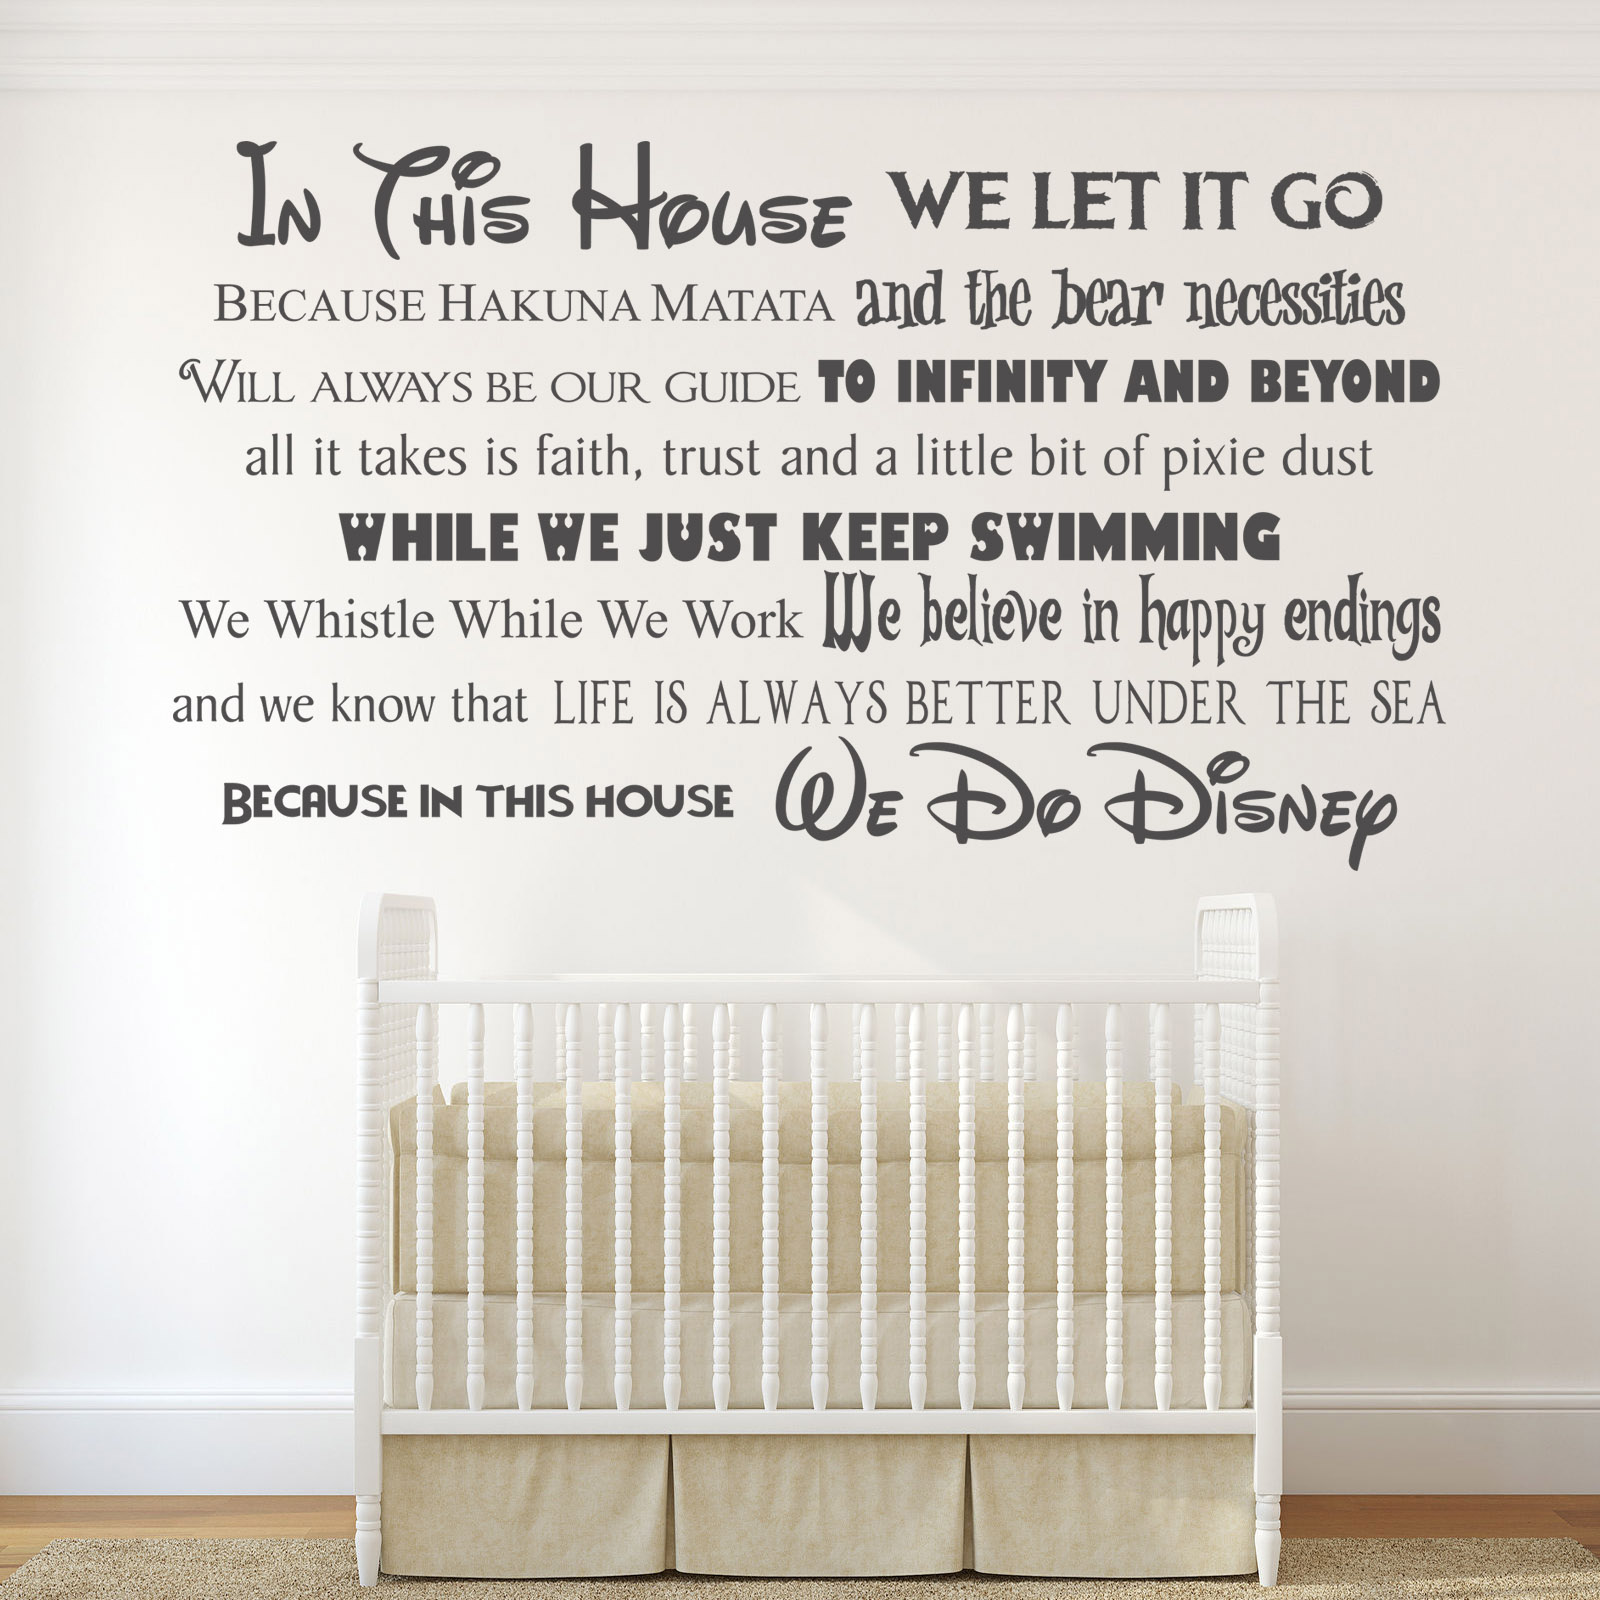 In this house we do disney style landscape quote rules vinyl wall in this house we do disney landscape vinyl wall art amipublicfo Choice Image